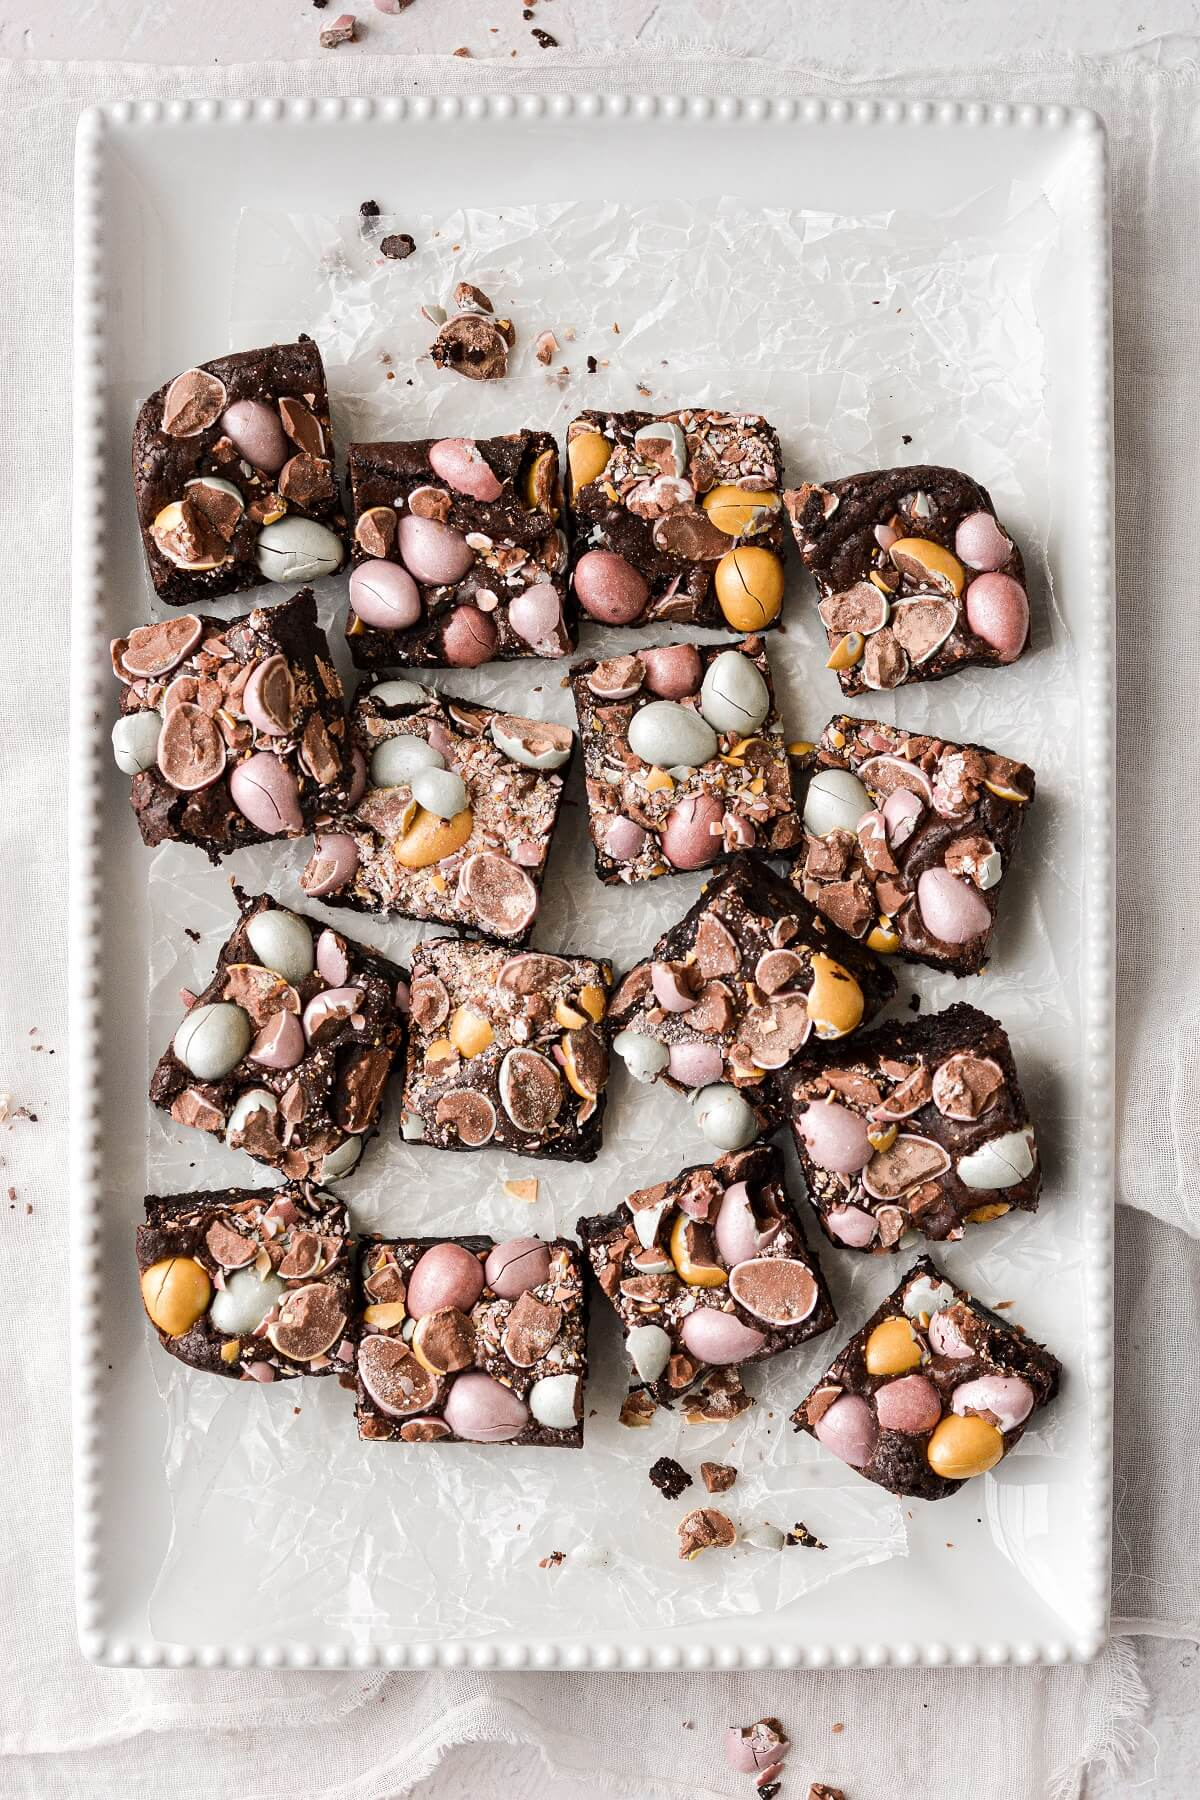 Mini cadbury egg Easter brownies, cut into squares on a white platter.